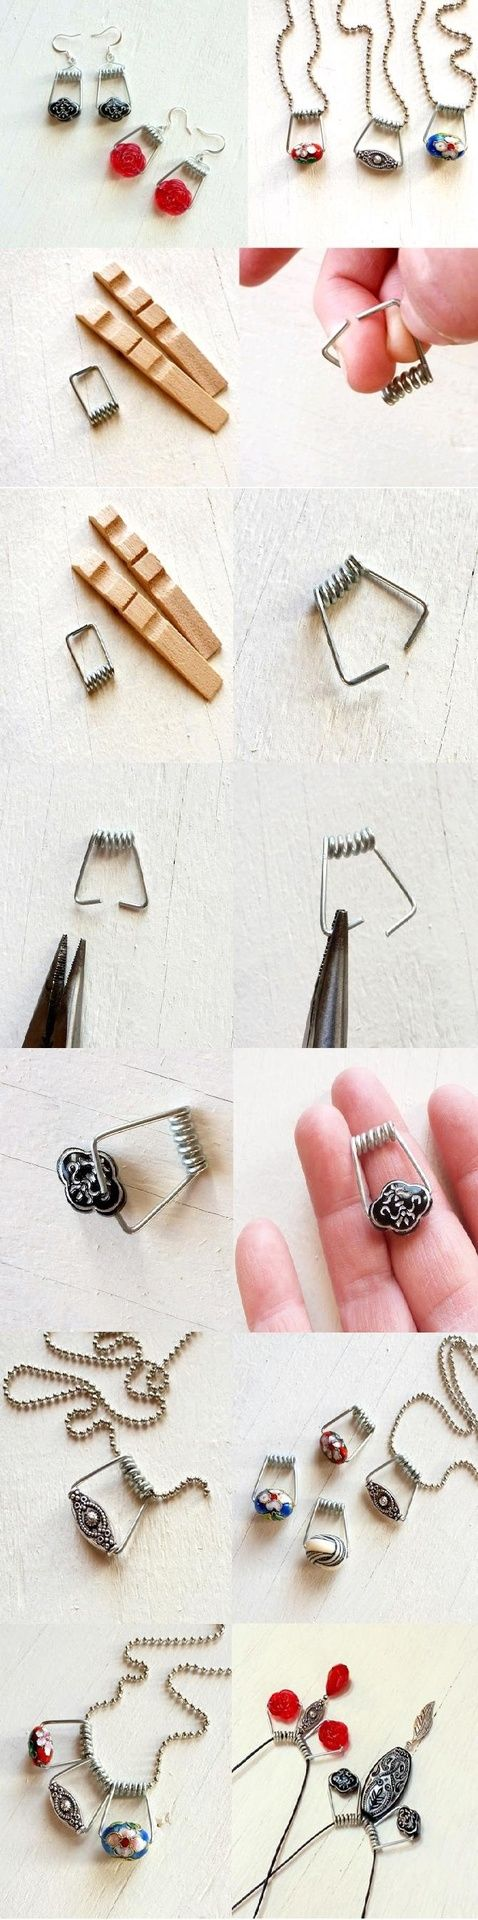 repurpose clothespin spring as jewelry as a bead bail.